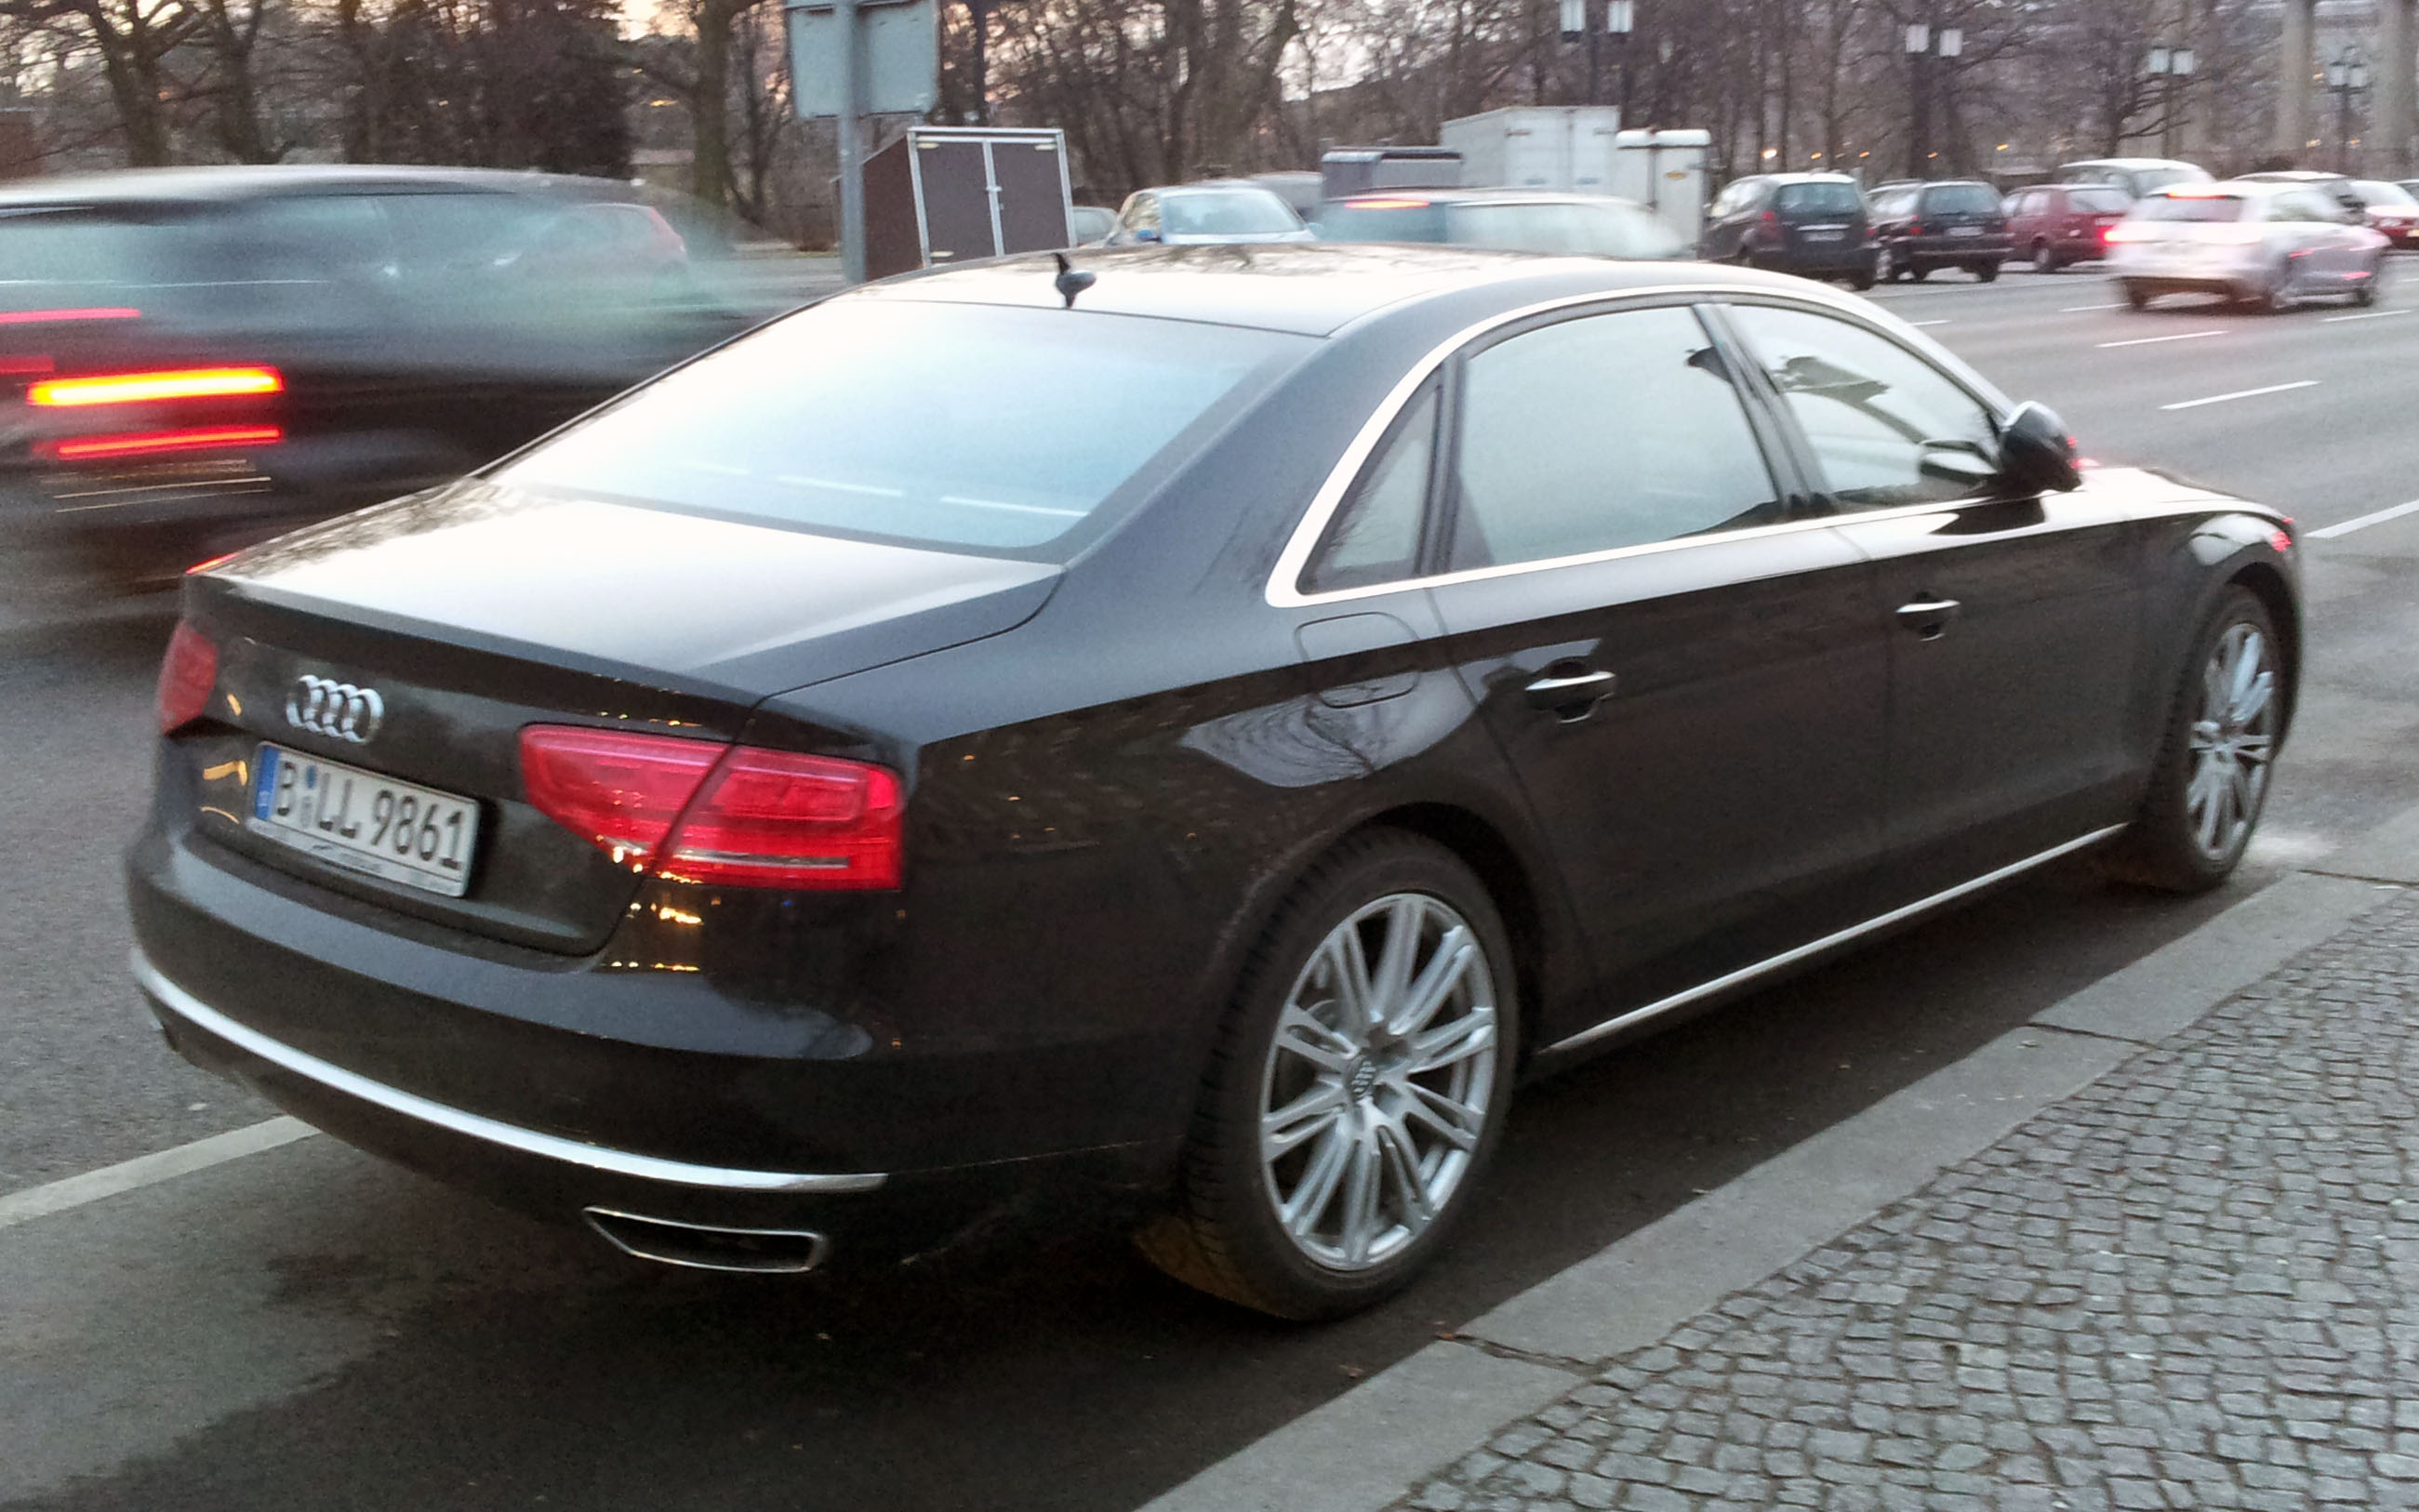 File:Black Audi A8 L W12 (D4) rr 2012.jpg - Wikimedia Commons